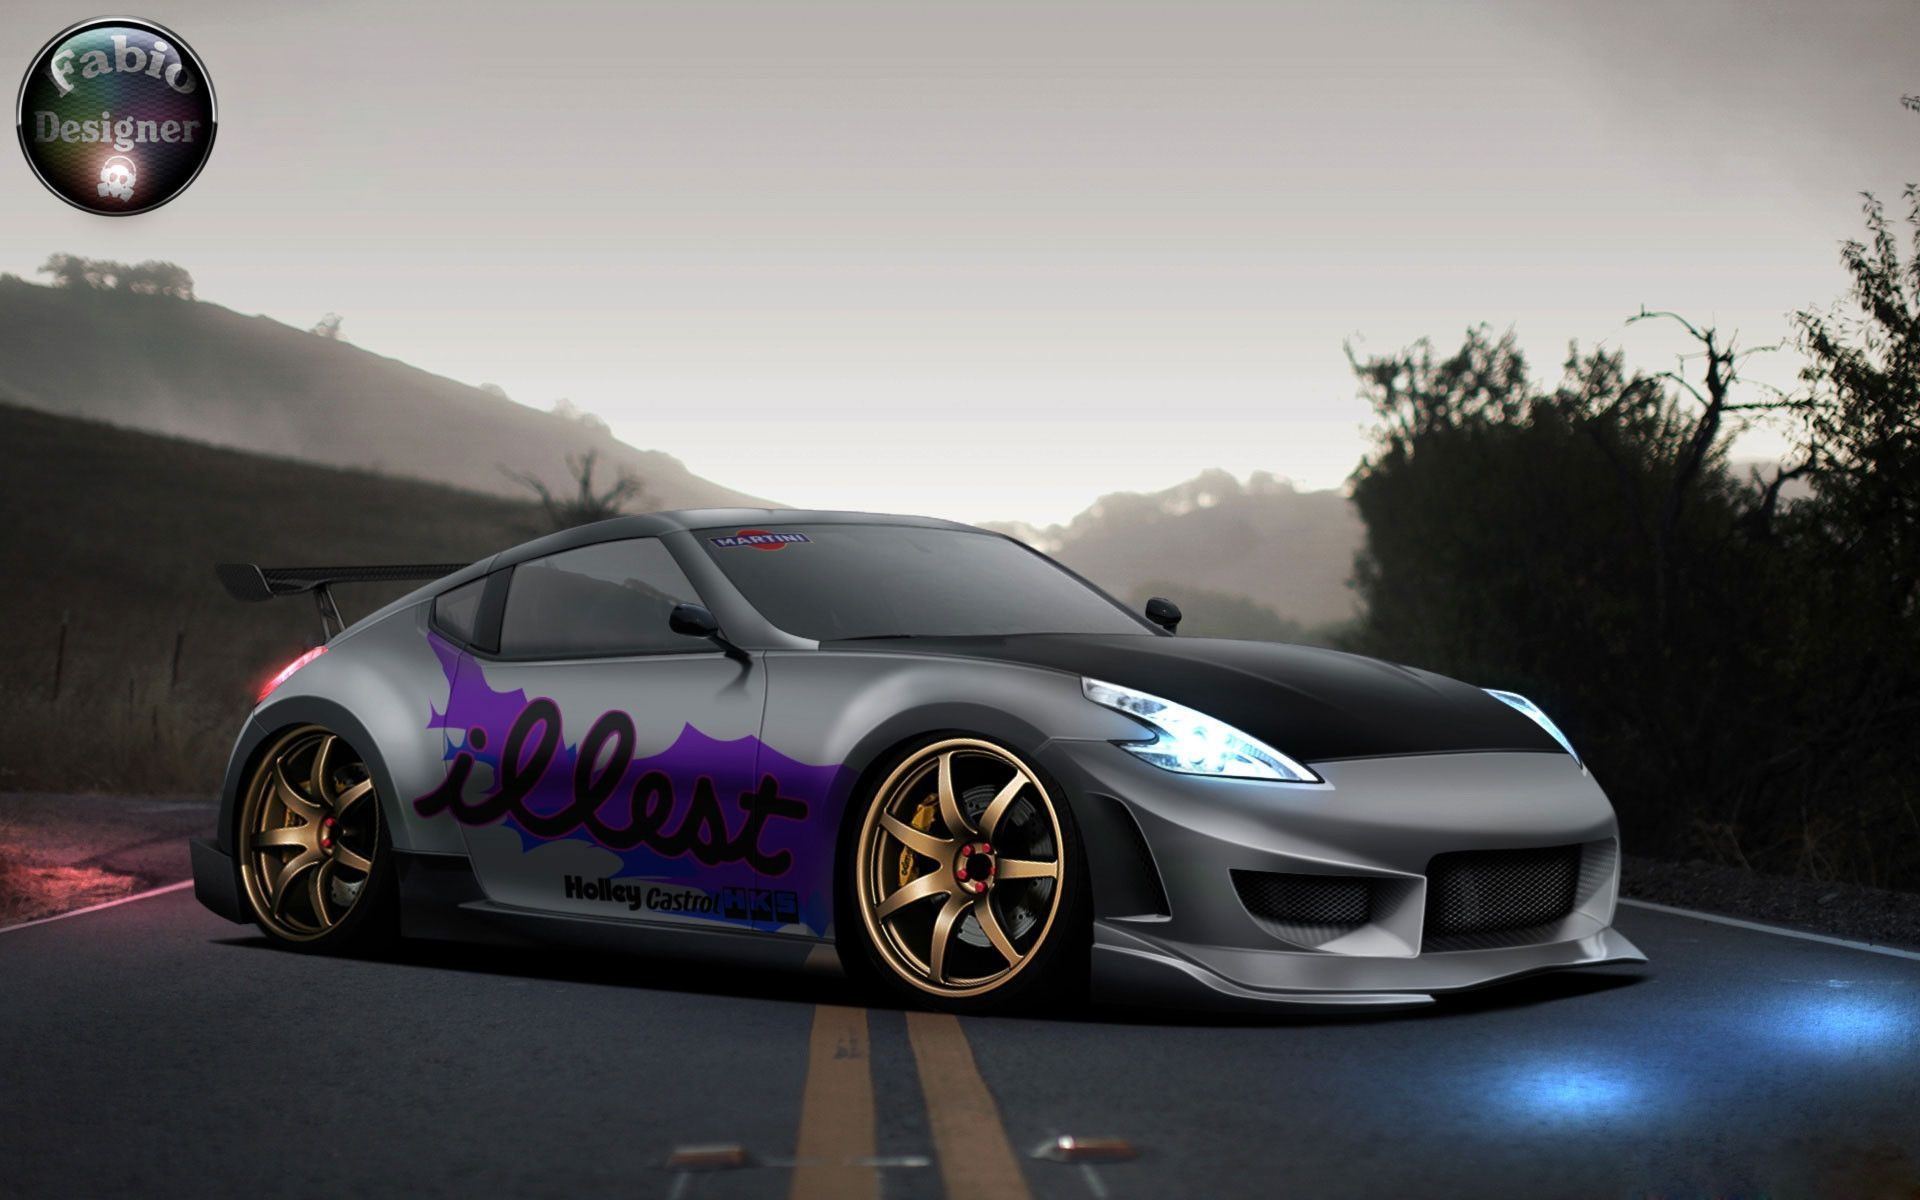 Speedy Car Wallpapers For Free Desktop Download 1024819 Awesome